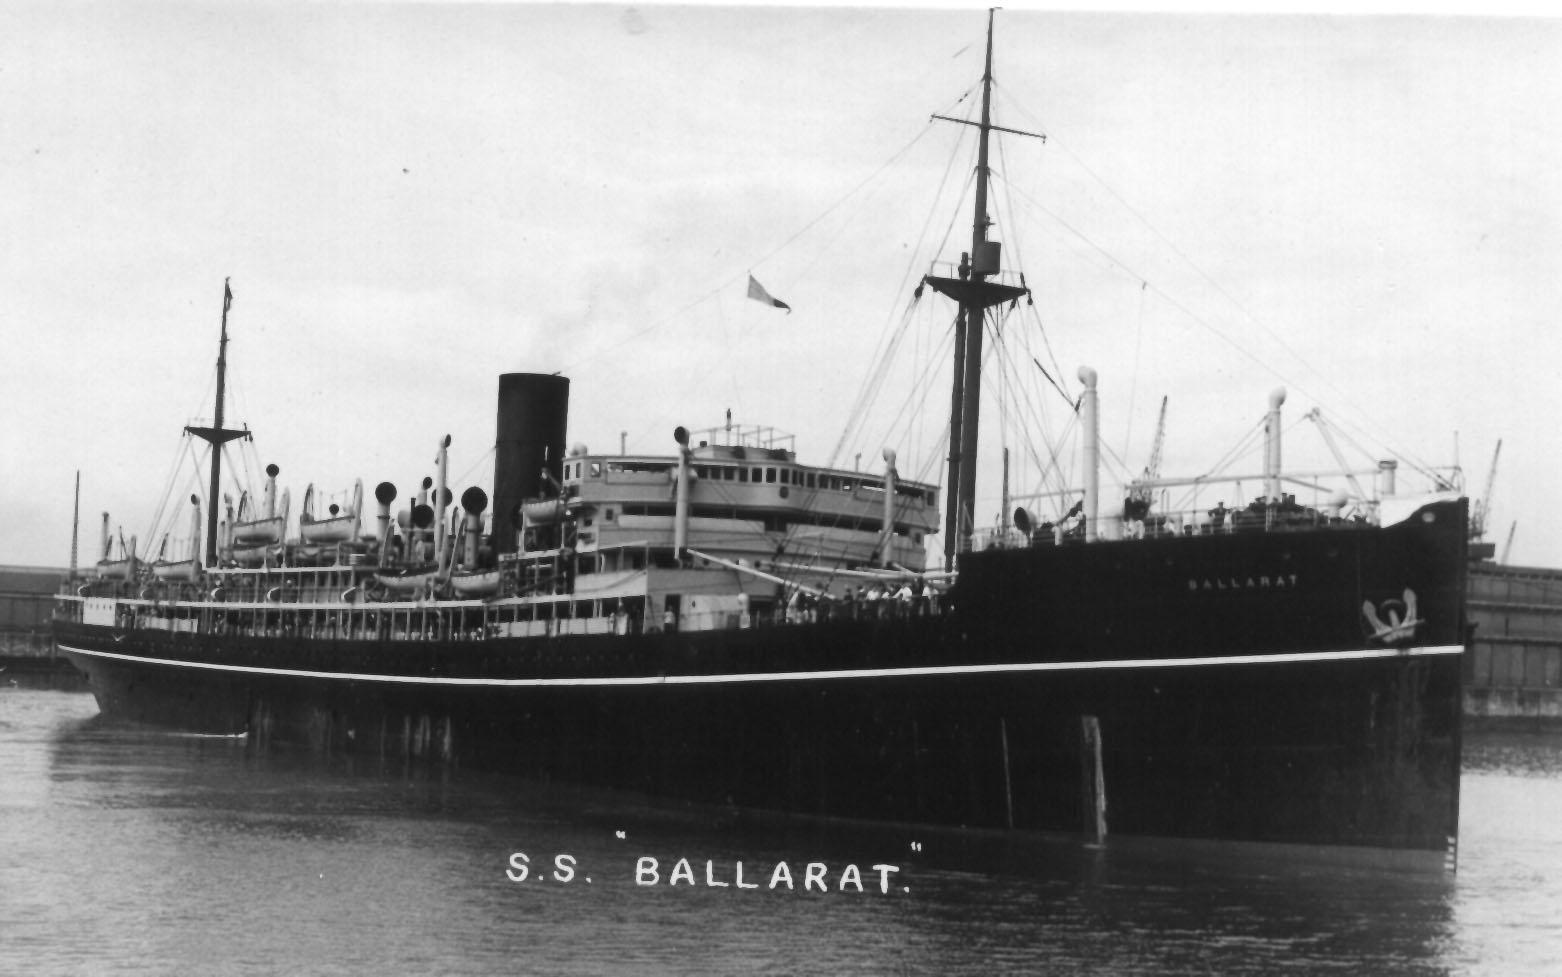 Built by Harland & Wolff, Greenock, Scotland.  Owned by P&O Branch Service from 1921 - 1935.  She had her maiden voyage on 27 January 1922 and then operated the route between the UK and Australia via the Cape of Good Hope.  She was broken up in 1935 in Wa